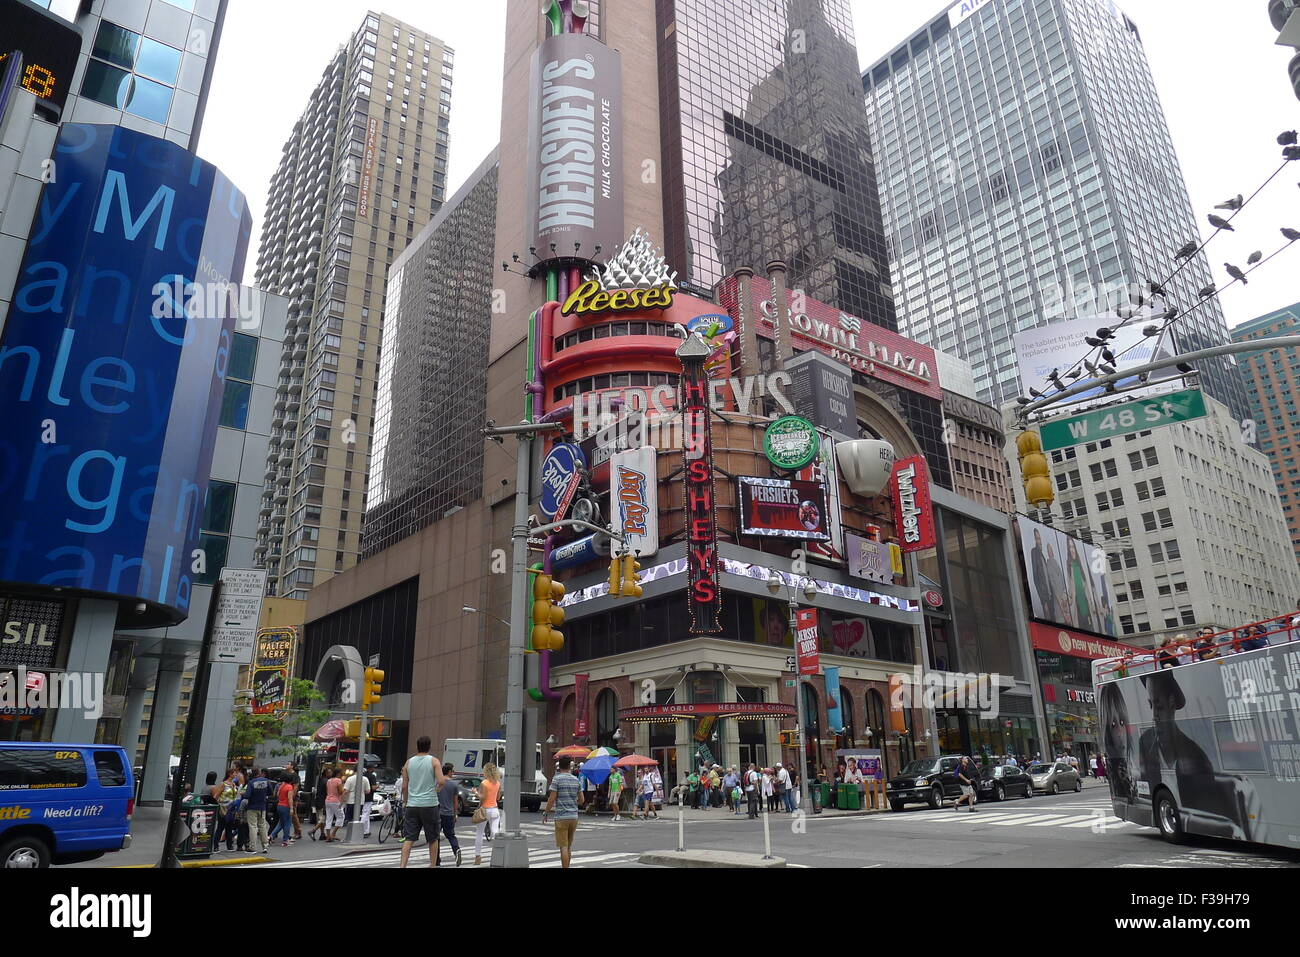 Hershey's Chocolate World on Broadway in NYC Stock Photo, Royalty ...